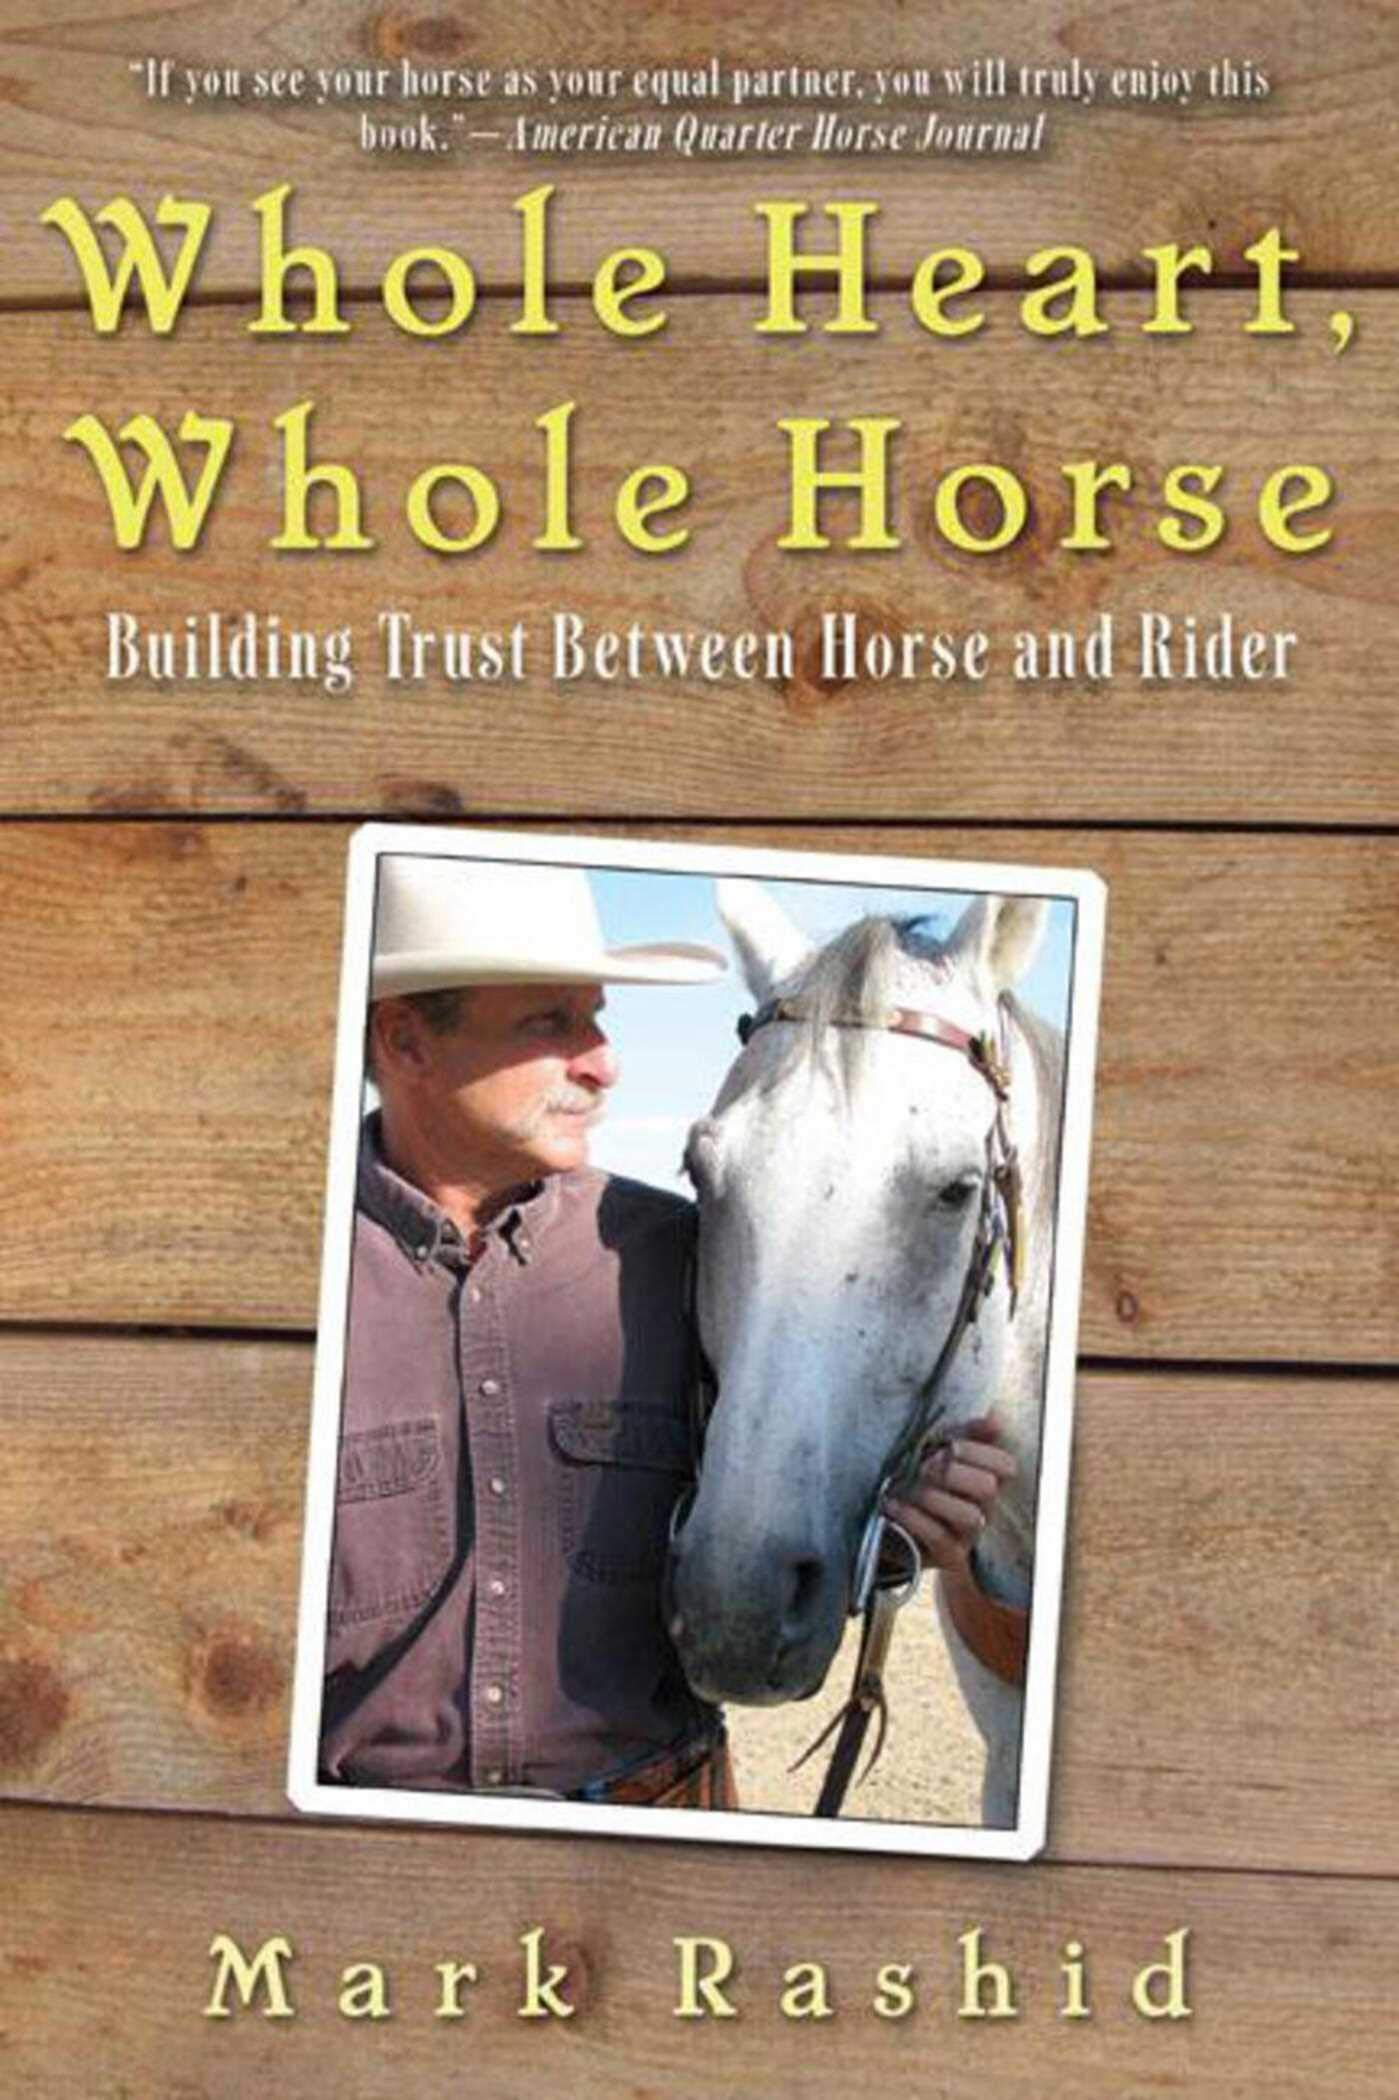 Image OfWhole Heart, Whole Horse: Building Trust Between Horse And Rider